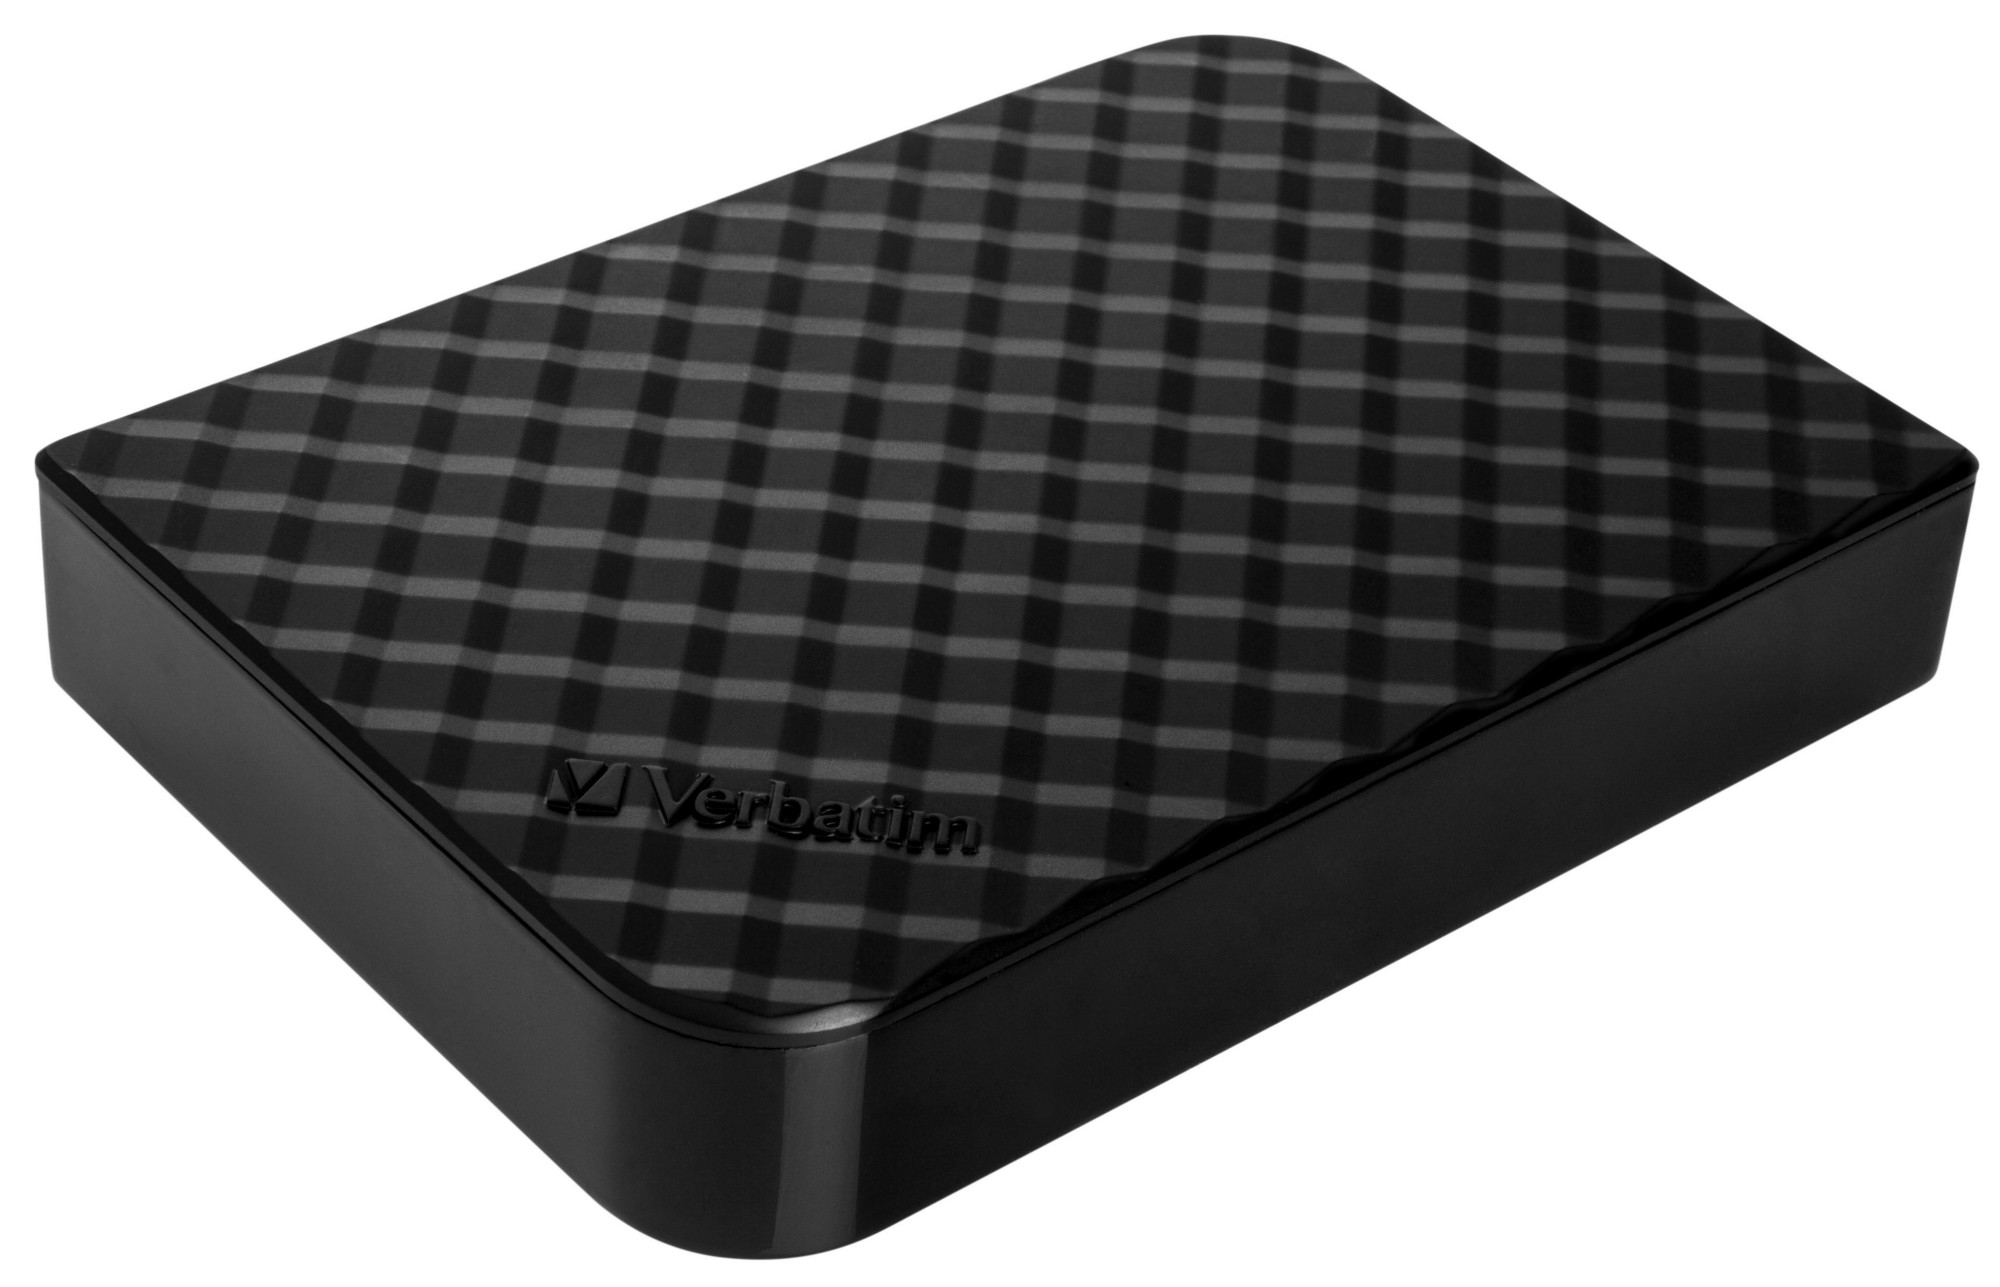 VERBATIM 47685 STORE 'N' SAVE 4000GB BLACK EXTERNAL HARD DRIVE